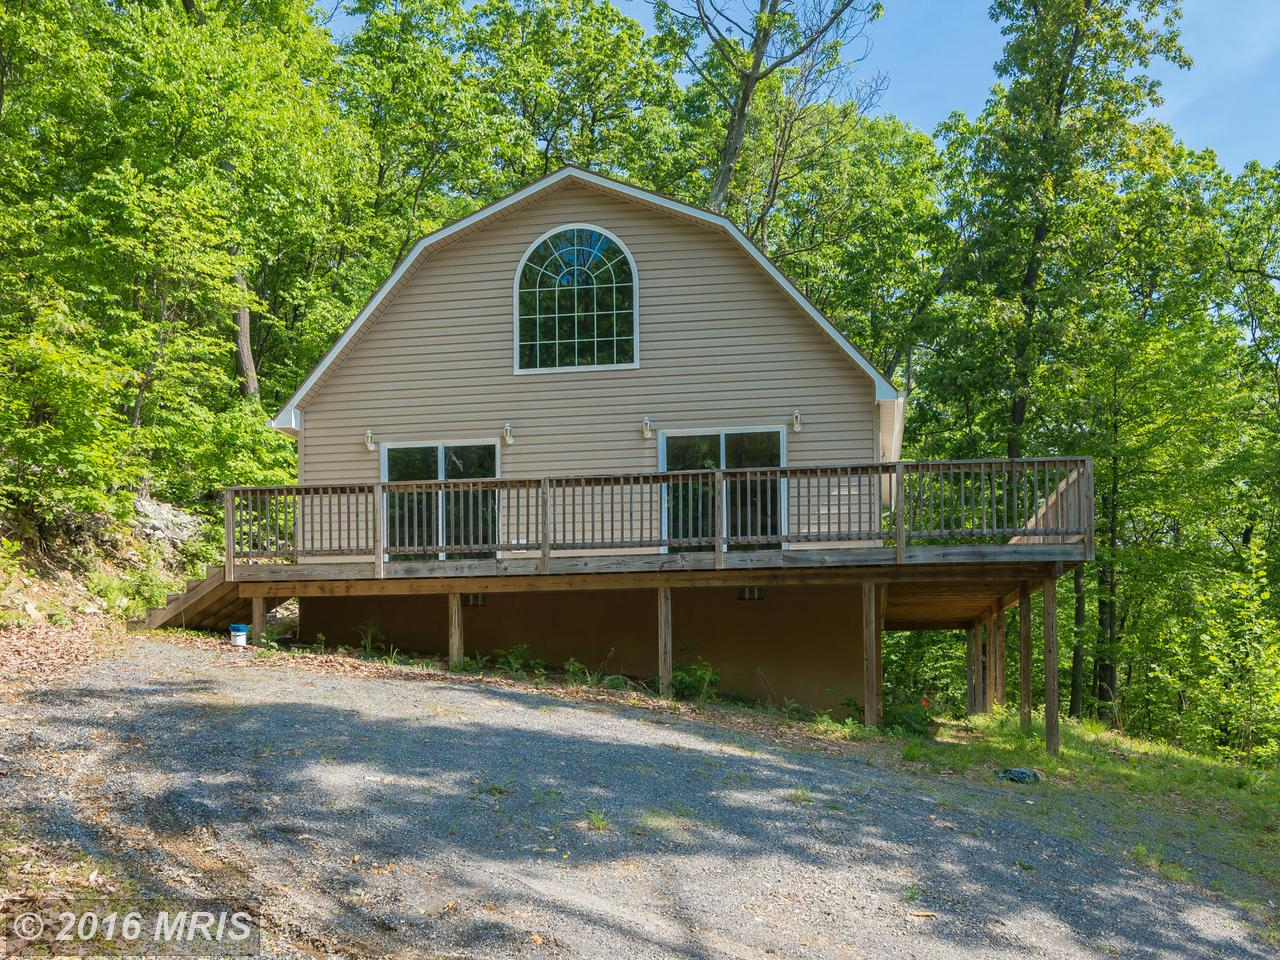 Homes For Sale In The Spruce Pine Hollow Subdivision